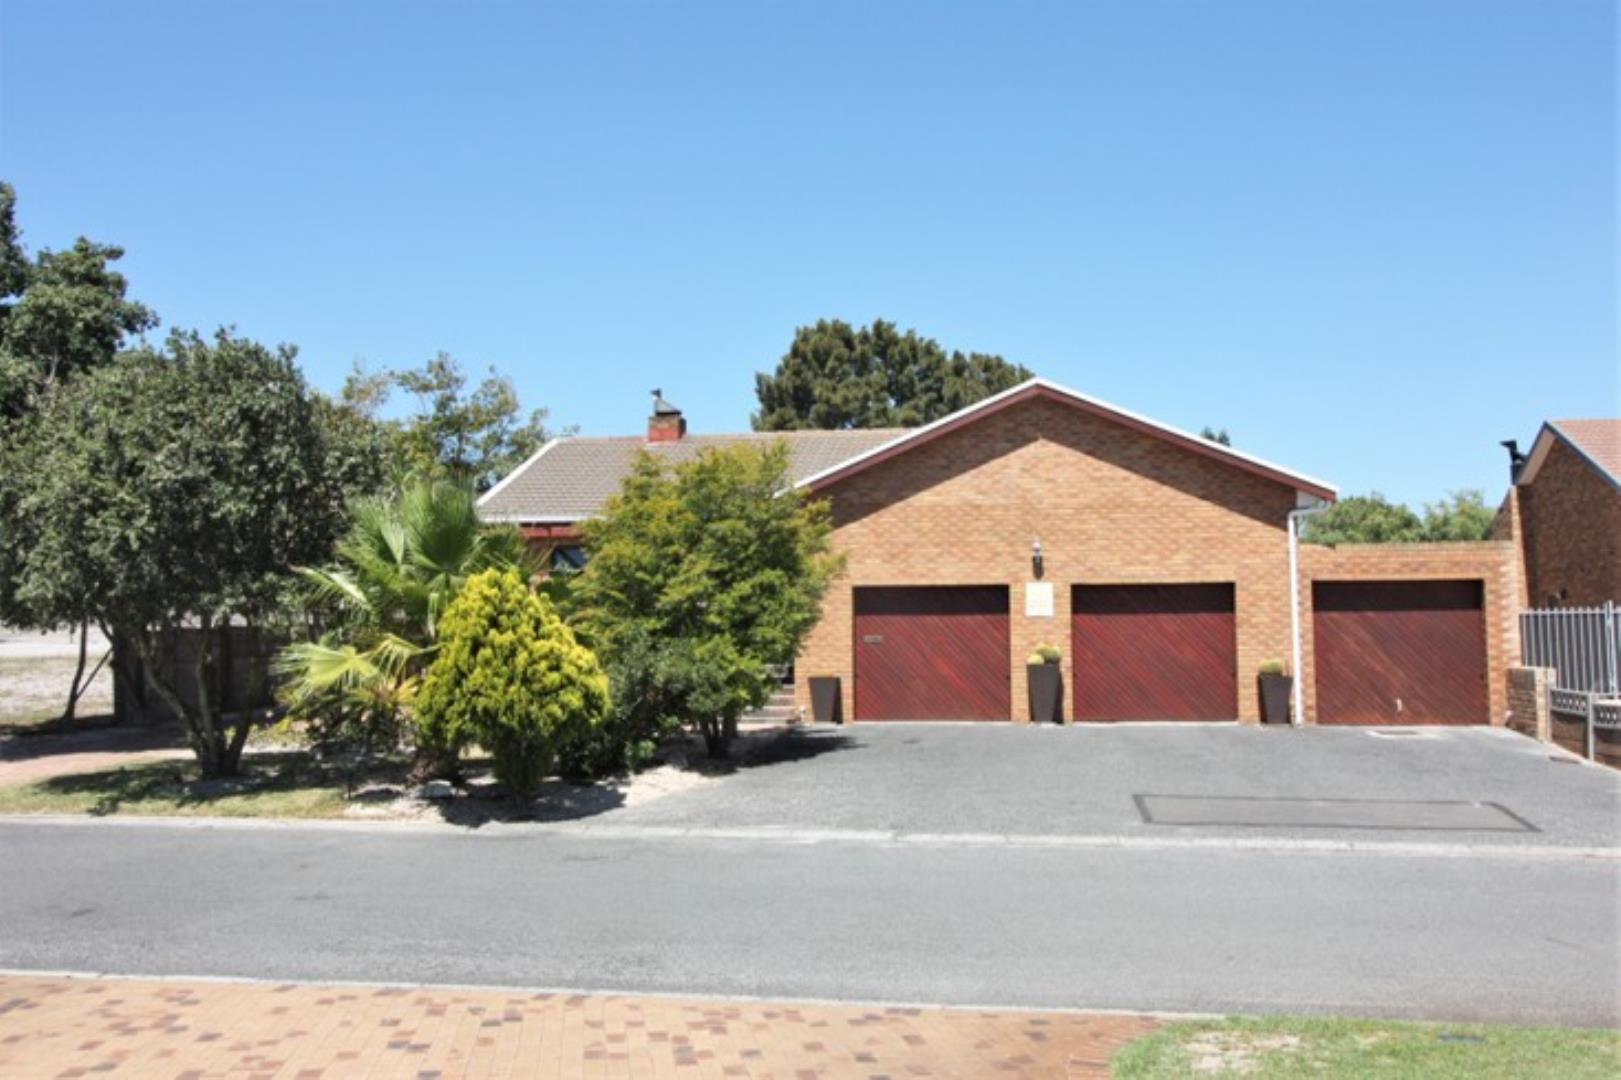 4 Bedroom House for Sale in Rouxville, Kuils River - Western Cape